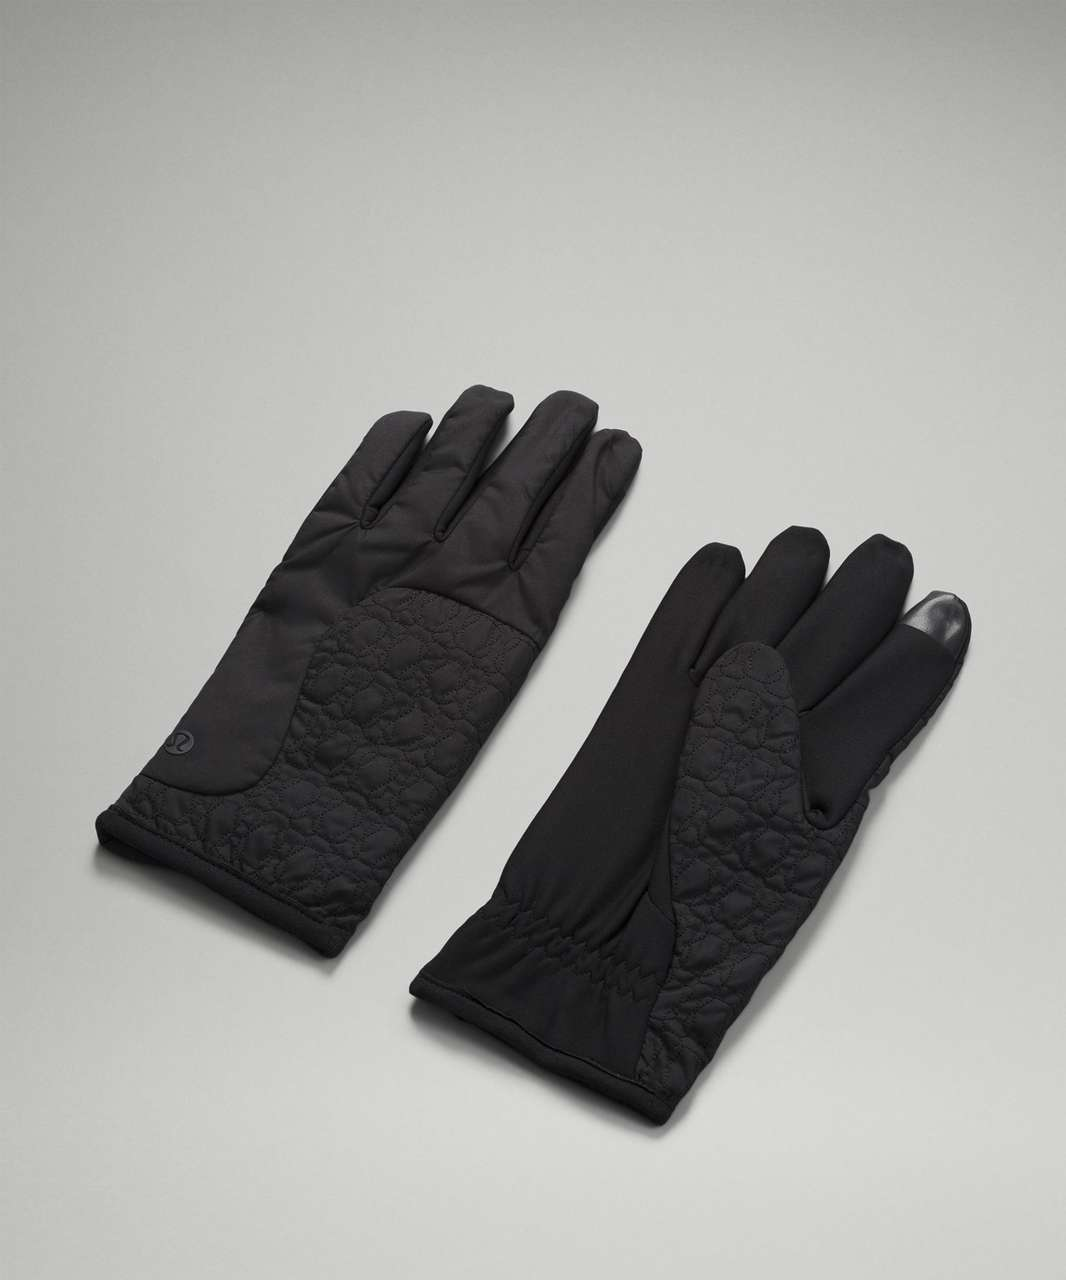 Lululemon Insulated Quilted Gloves - Black